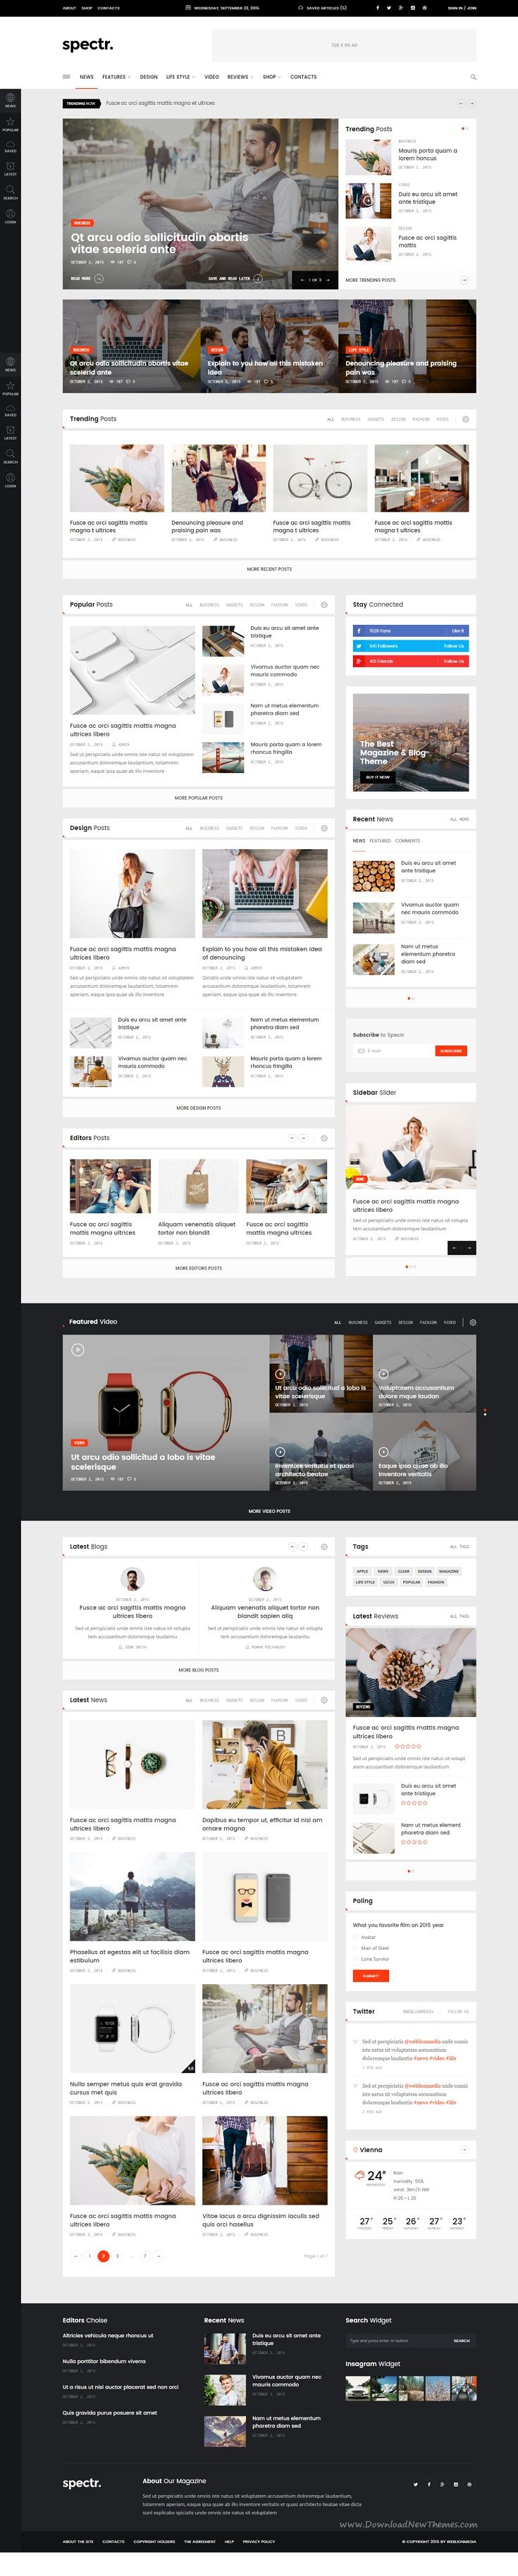 20 best ideas about sharepoint design on pinterest for Sharepoint responsive template